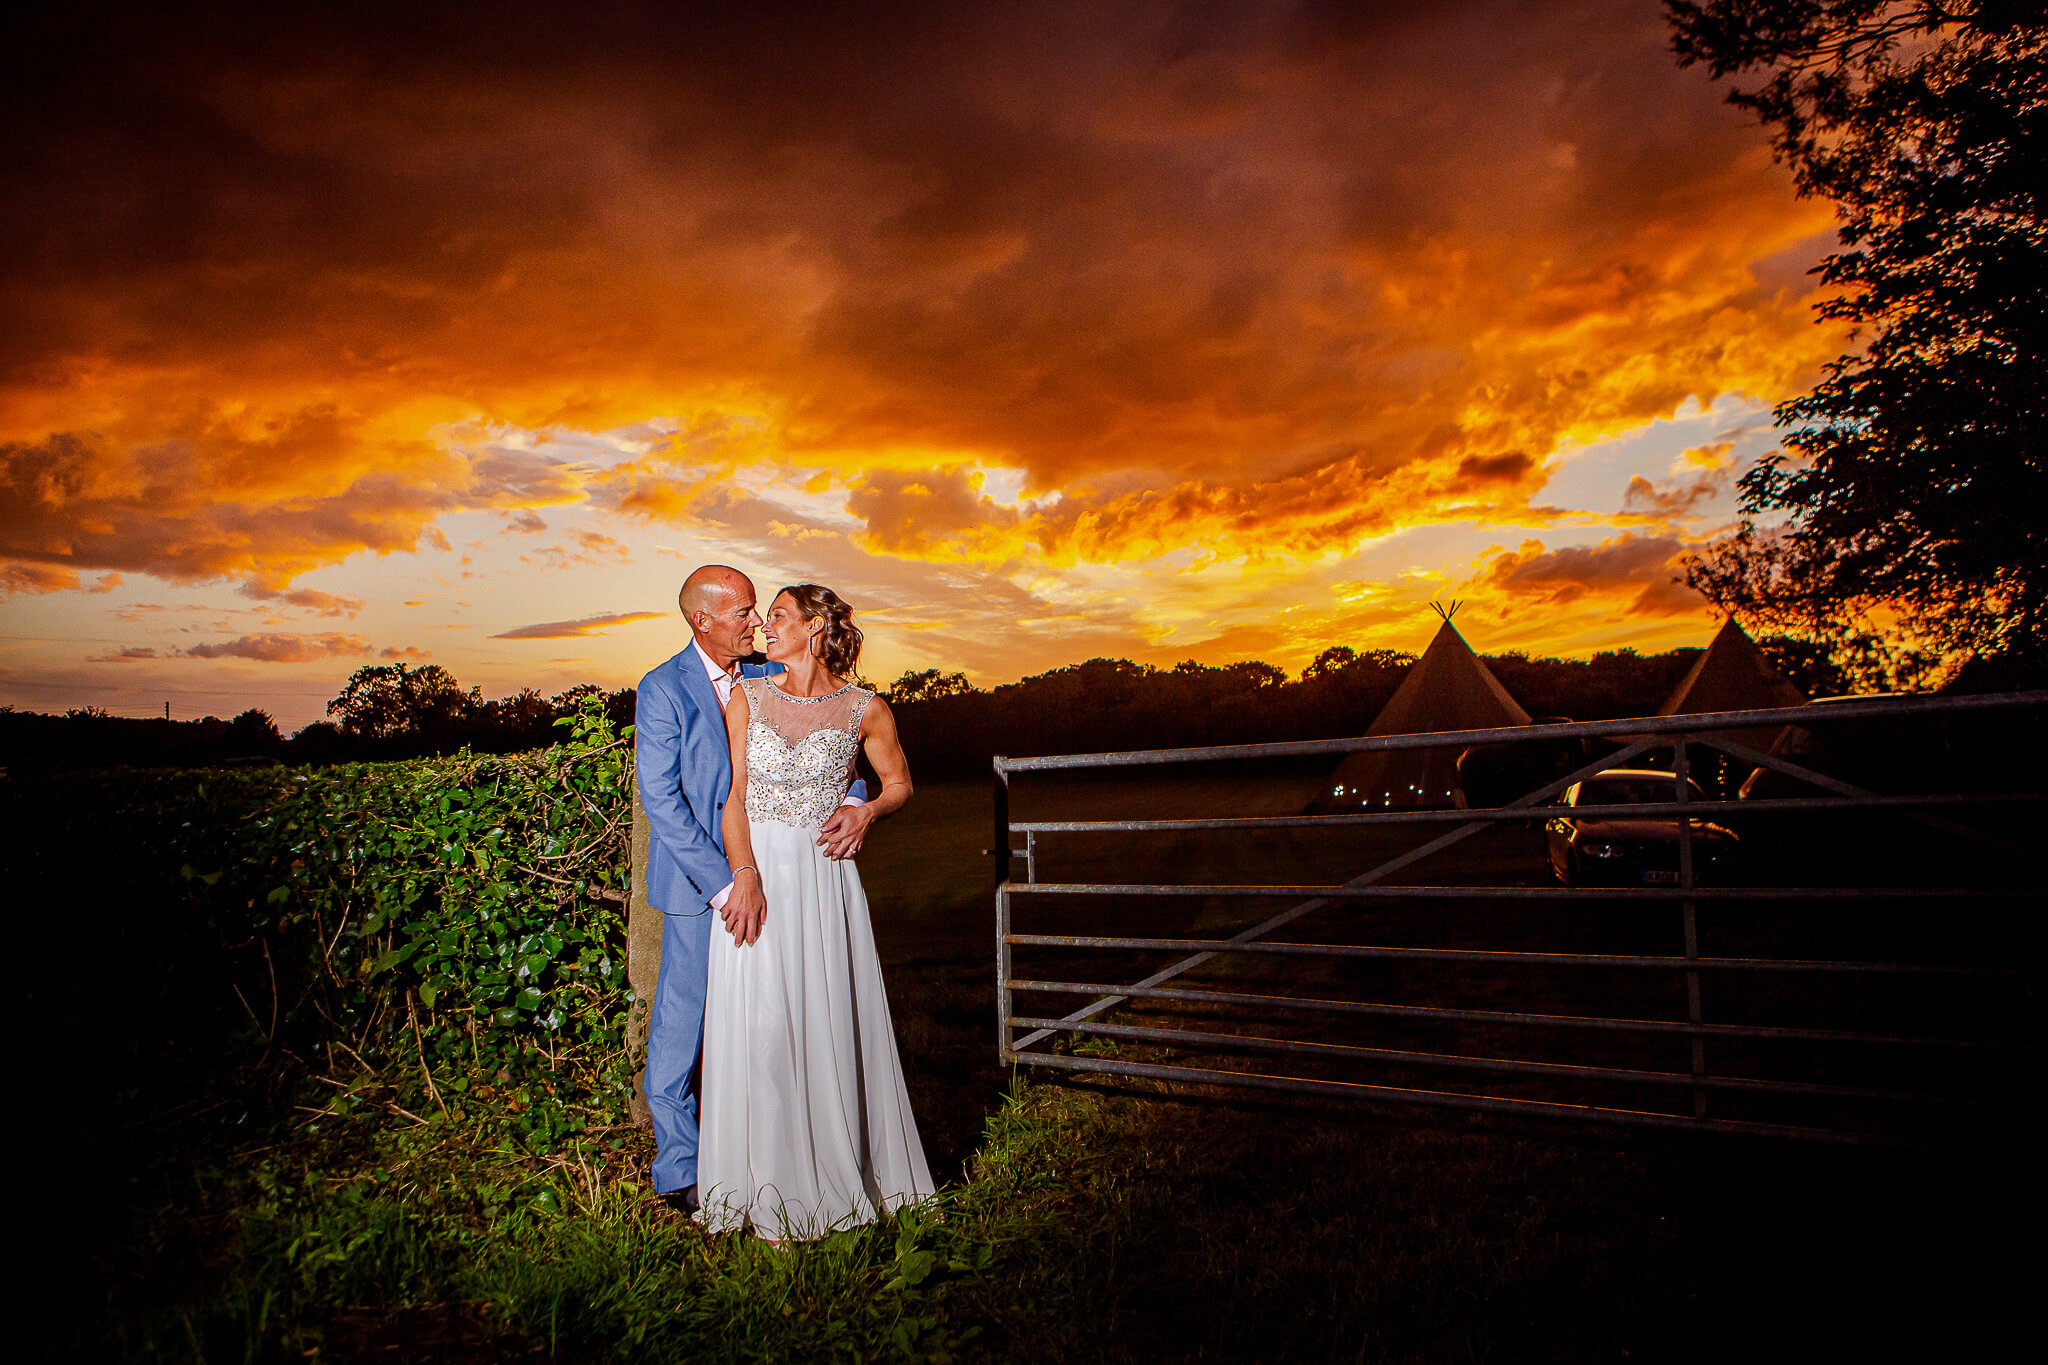 best-wedding-photographers-uk-europe-stanbury-photography-186